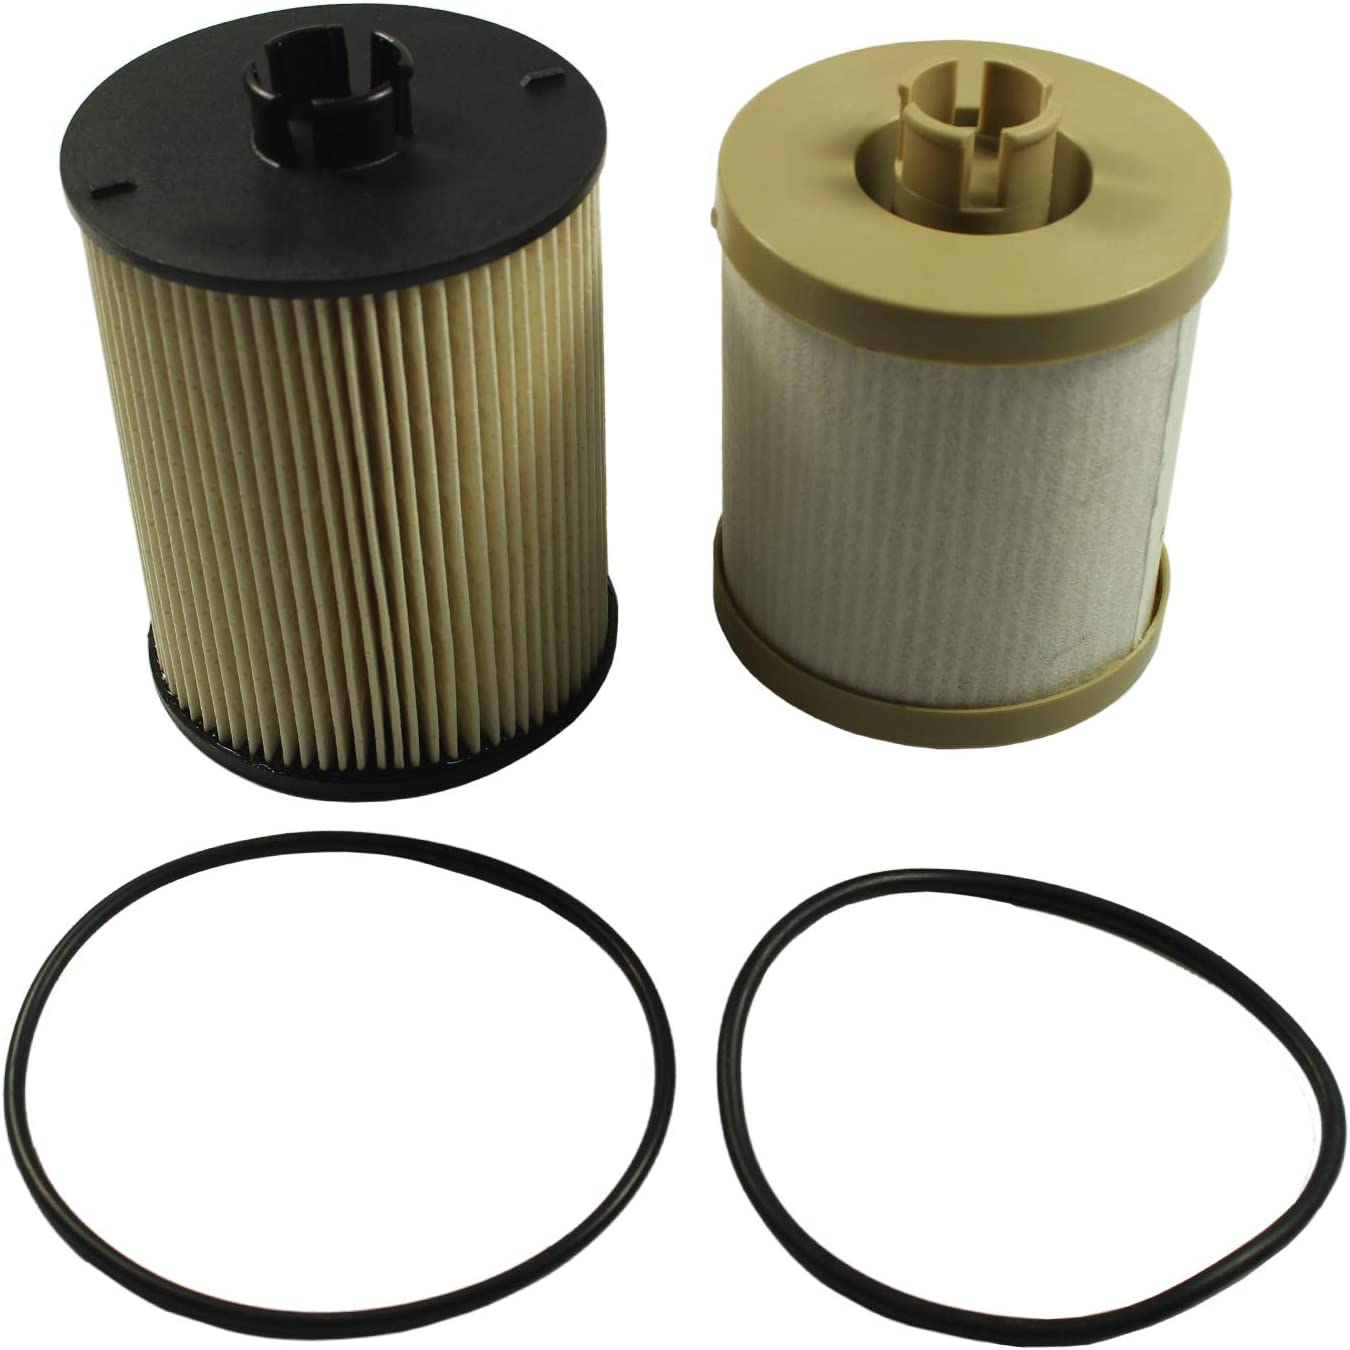 Amazon.com: JDMSPEED New FD4617 Fuel Filter Replacement For Ford  Powerstroke F-250 F-350 F-450 Super Duty 6.4L: AutomotiveAmazon.com